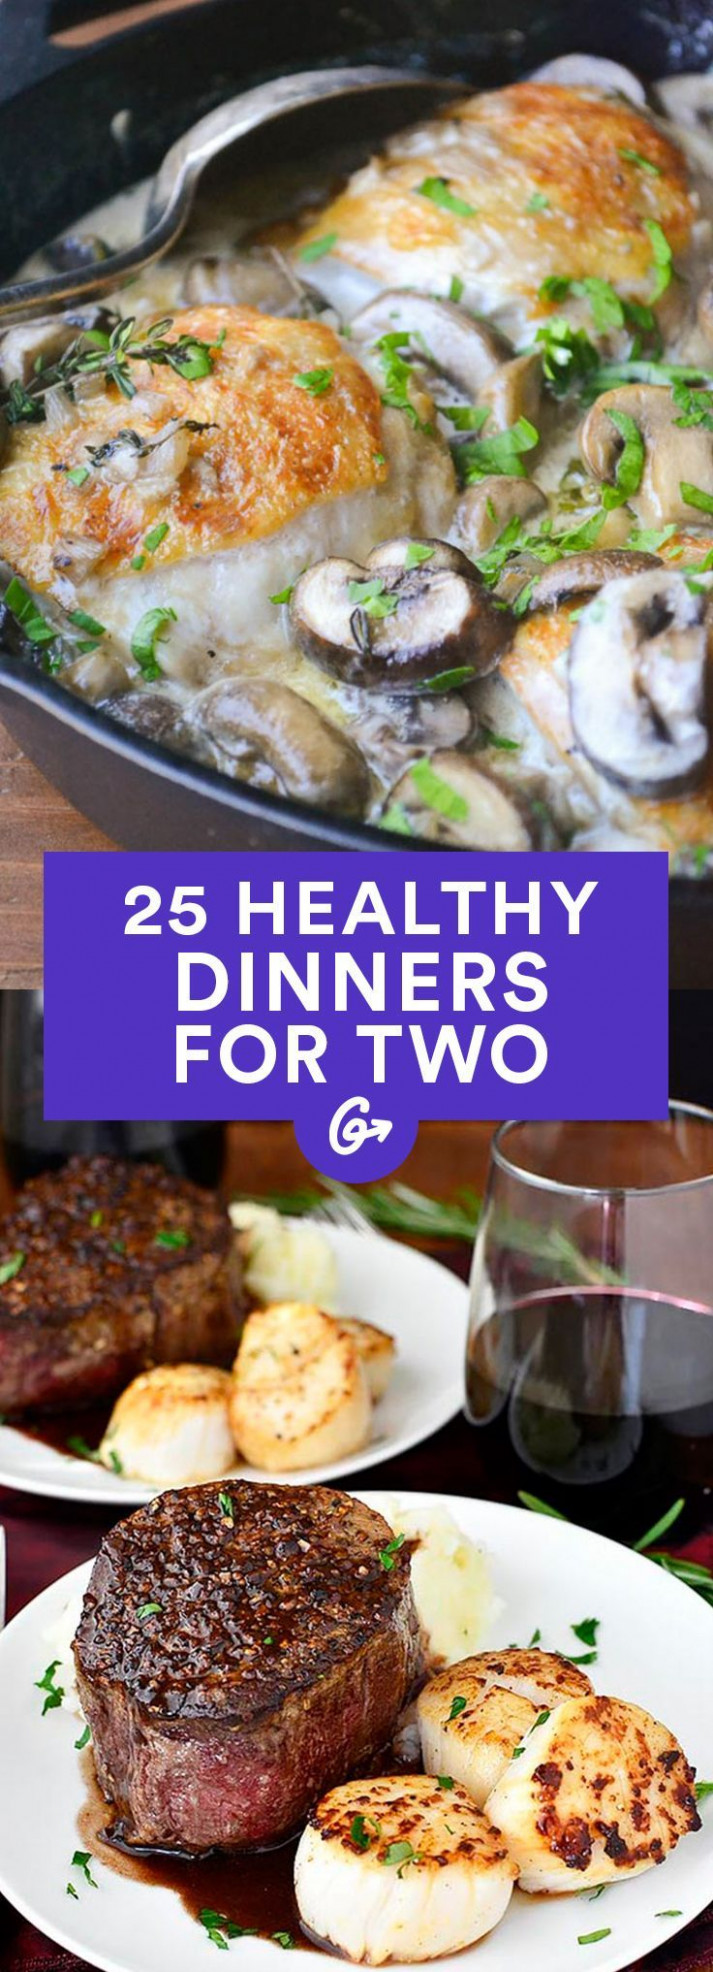 11 healthy dinner recipes for two - Nagel Kunst - healthy date night recipes